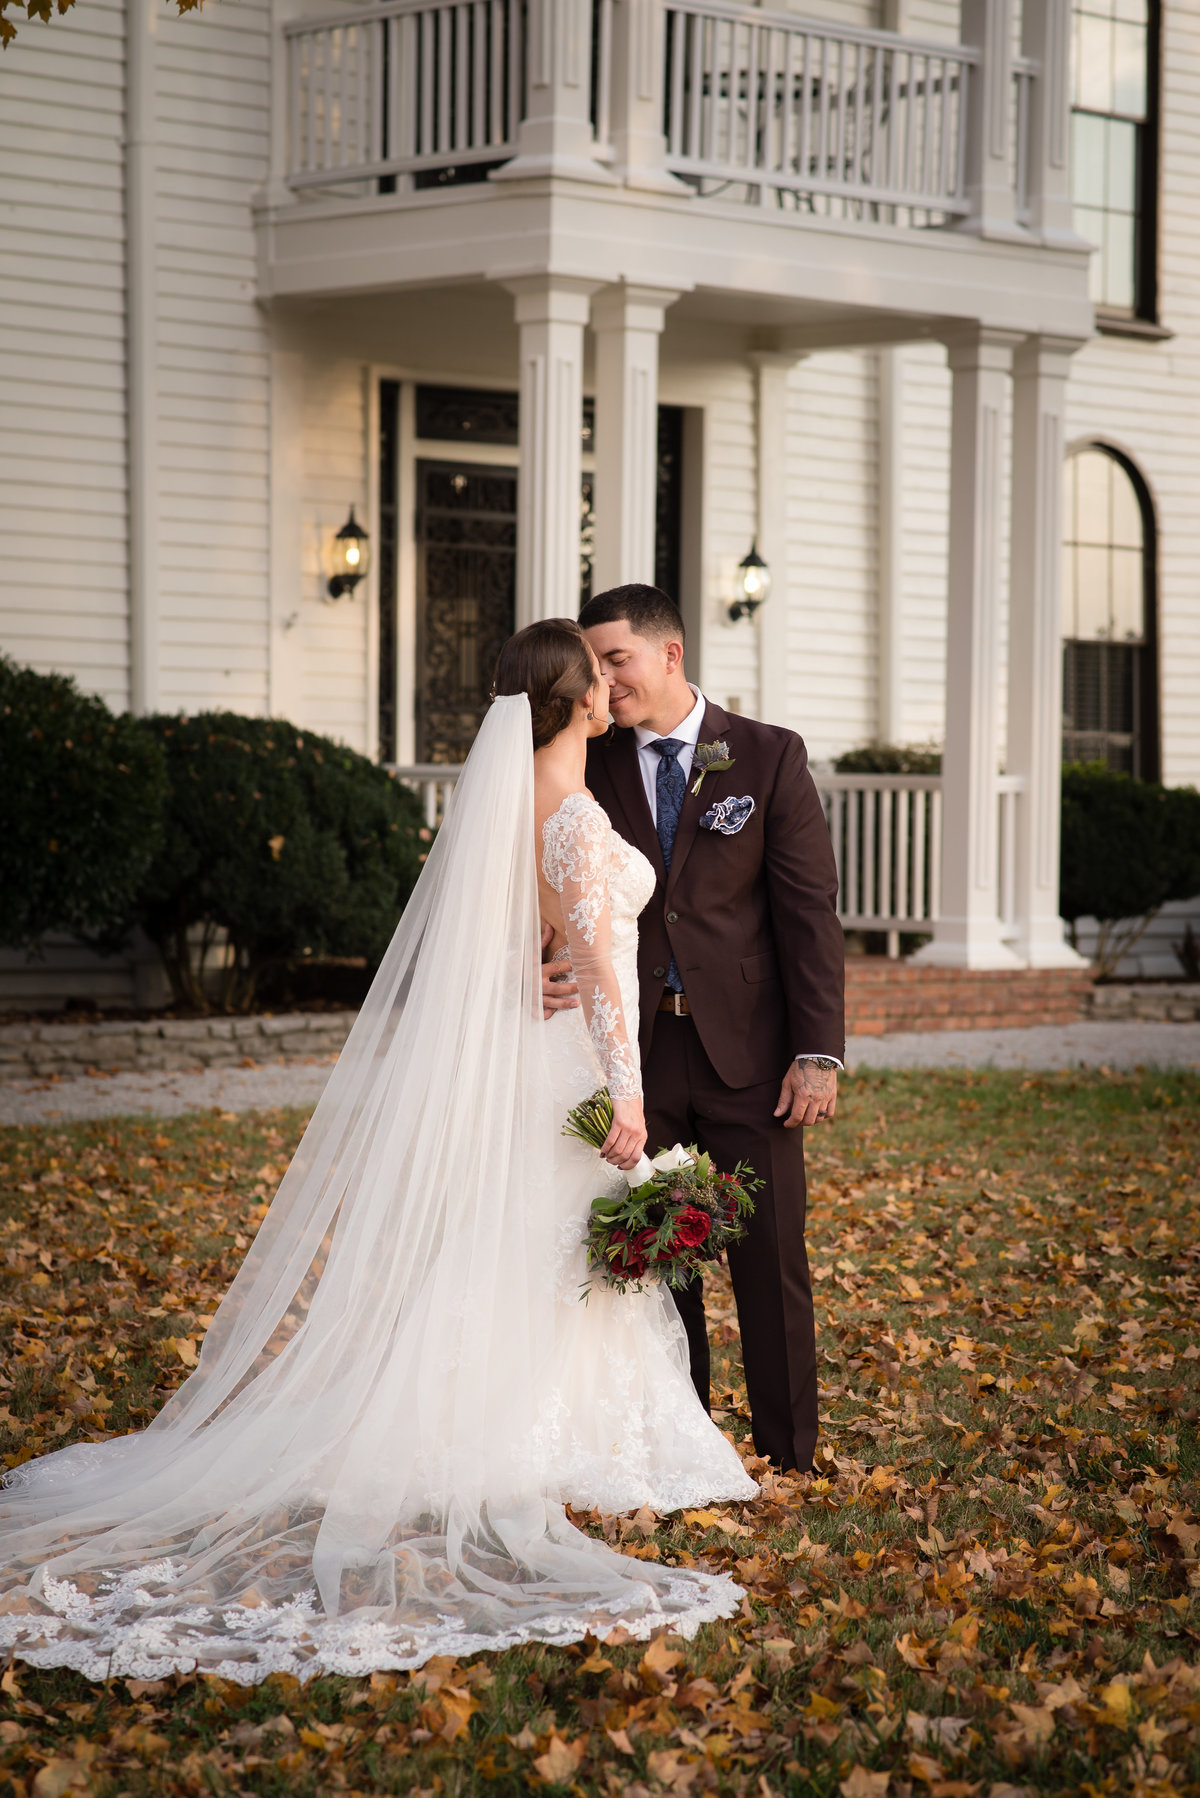 Tennessee Wedding Photographer - Mint Magnolia Photography7950